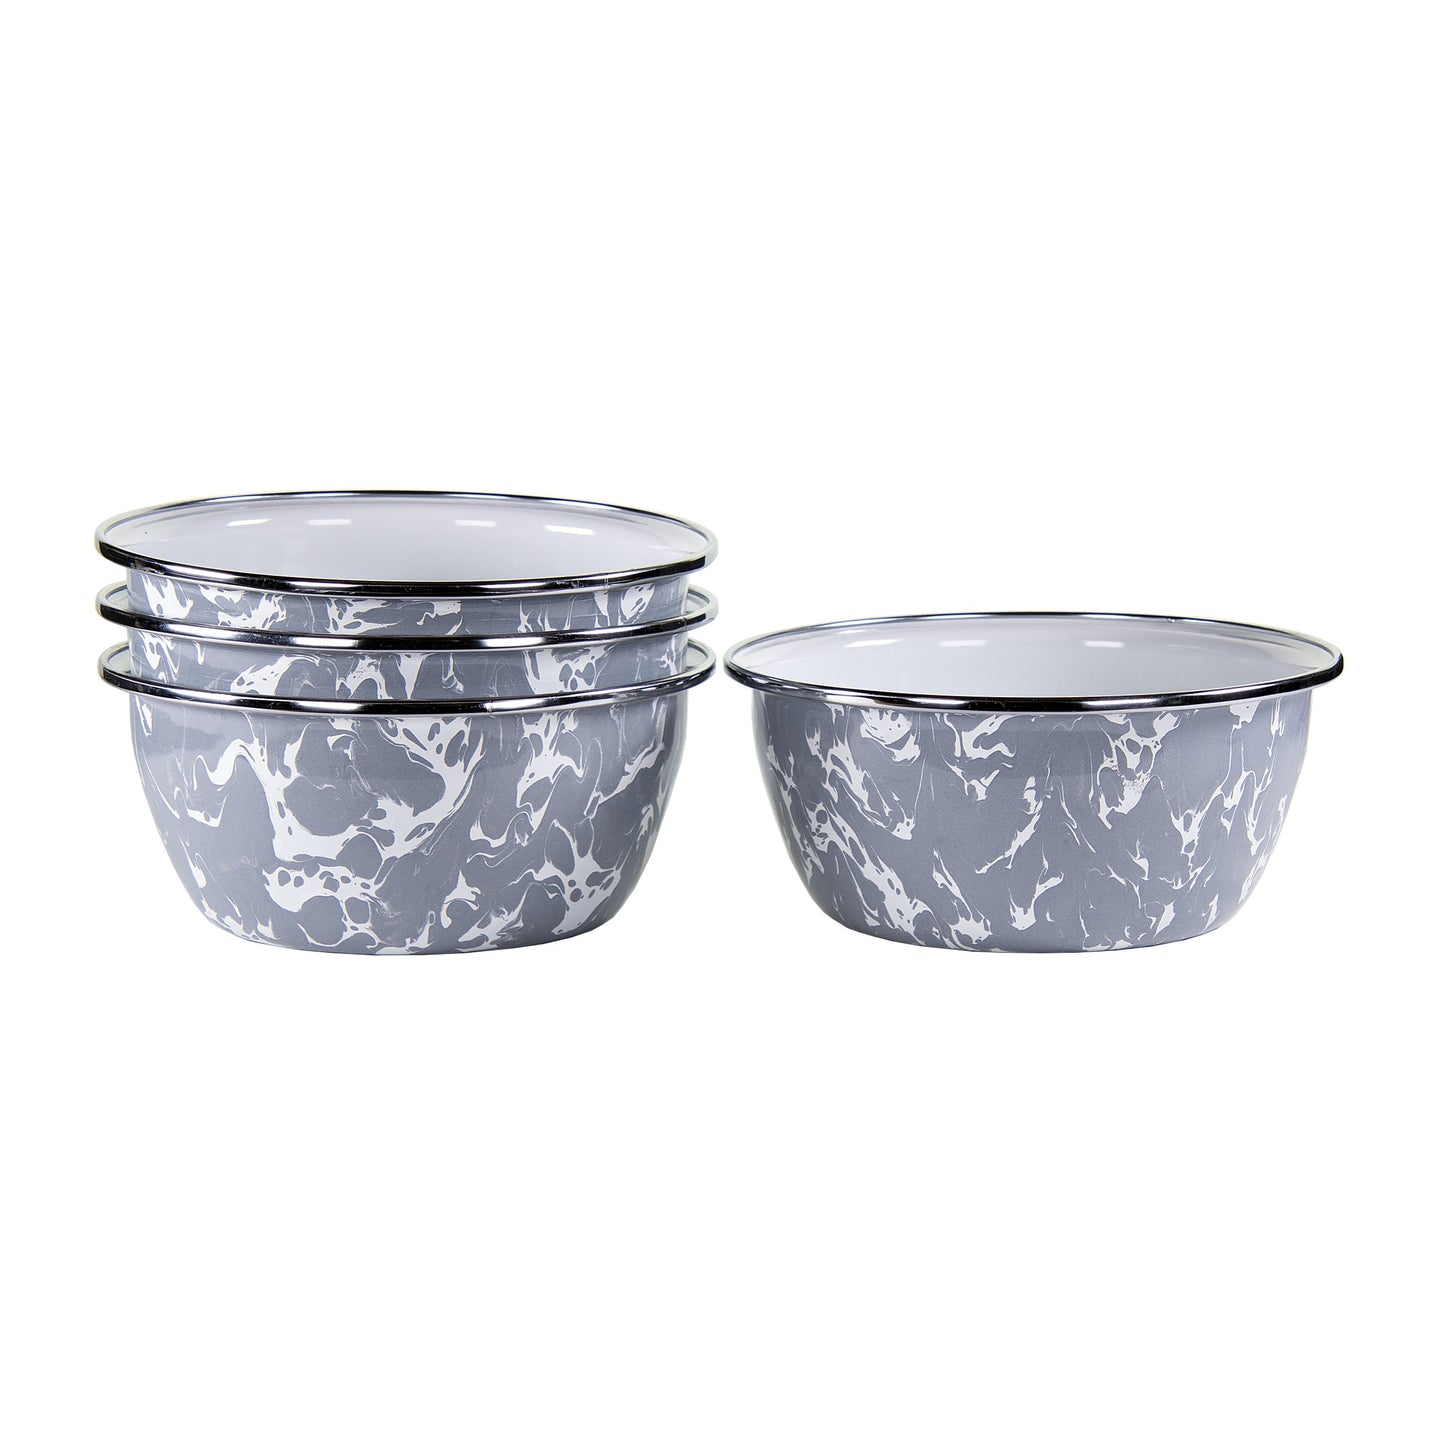 4pc Enamel Salad Bowl Set - Grey